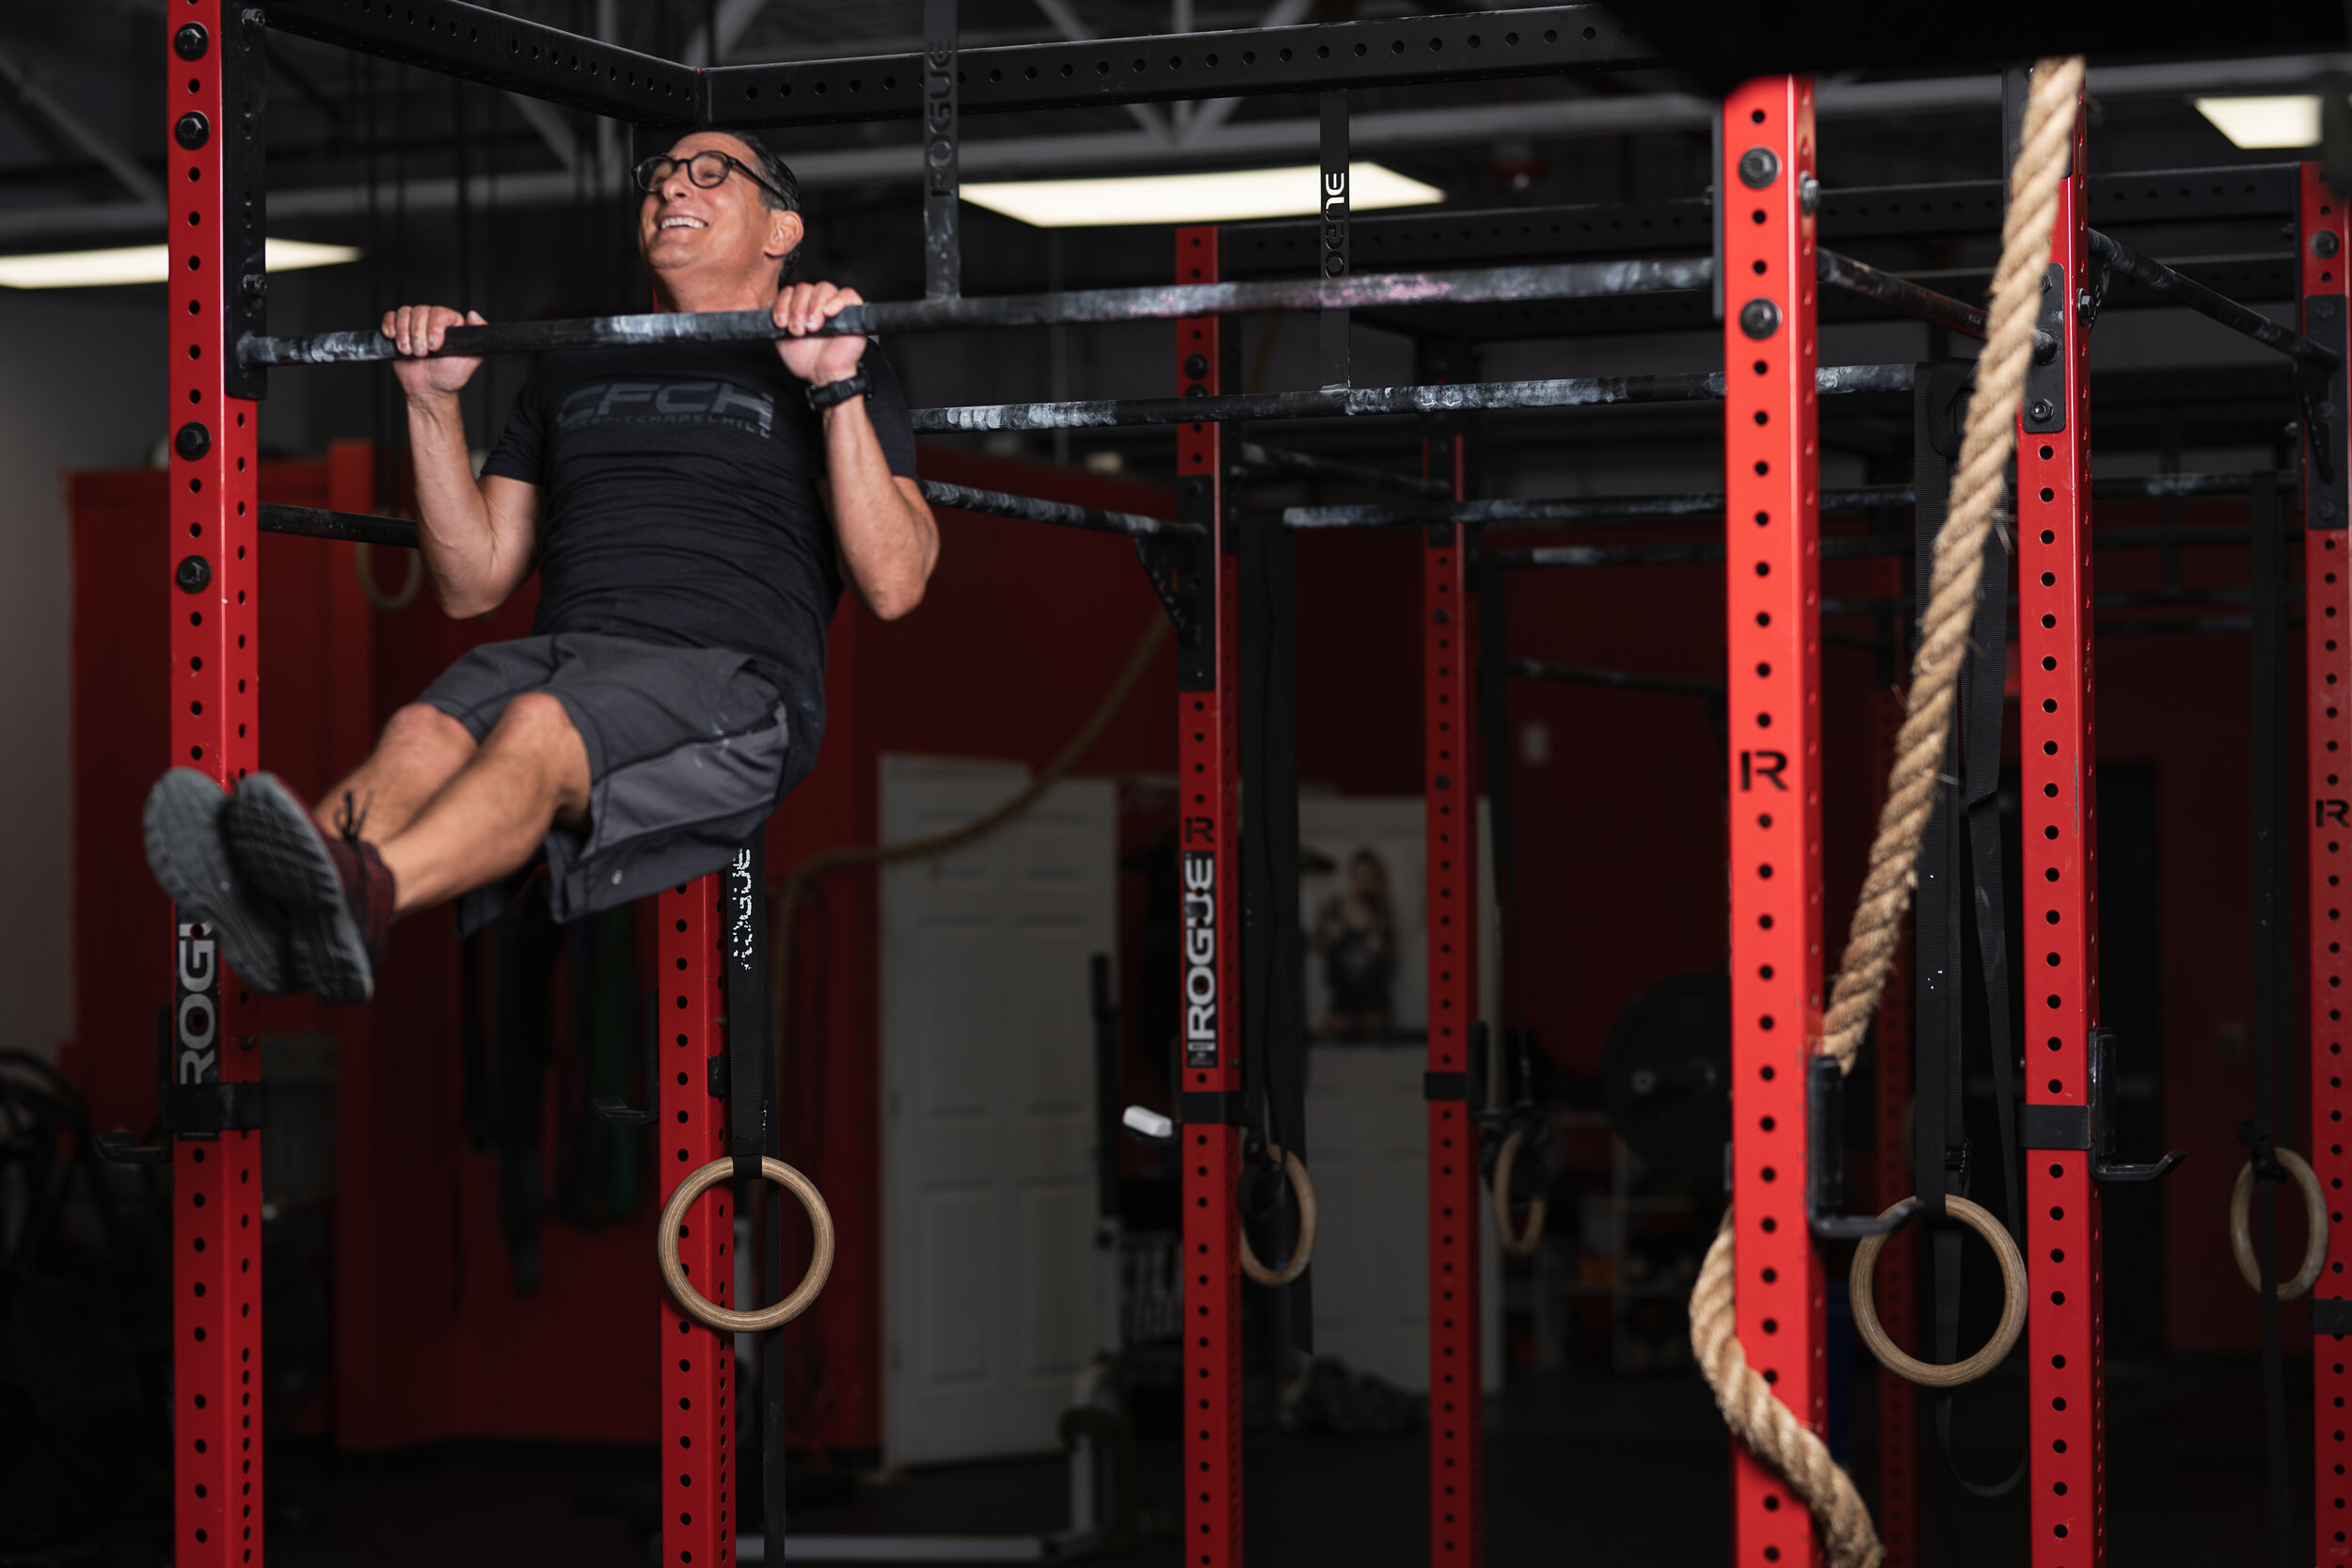 Pete Stone - - CoachCertificationsCrossFit Level 1 (CF-L1)CrossFit Level 2 (CF-L2)By the time I was 43, I had trained for body building, run long distances and cross trained, never finding the results I was looking for. After my son was born in 2009, I stopped working out because of sleepless nights and the exhaustion of new parenthood. I gained 20 pounds and was in terrible shape.My wife saw a Groupon for a CrossFit boot camp and I enrolled in the class and instantly I was hooked. CrossFit has changed my life. Having a community that truly cares and I am accountable to has made a huge difference in my life and my level of fitness.I decided in 2013 that I wanted to become a CrossFit Level 1 coach and I completed the course. It was a great experience. For me it is an honor to be able to coach and learn from an exceptional group of athletes. My goal is to create a safe and supportive environment where athletes can reach their full potential.